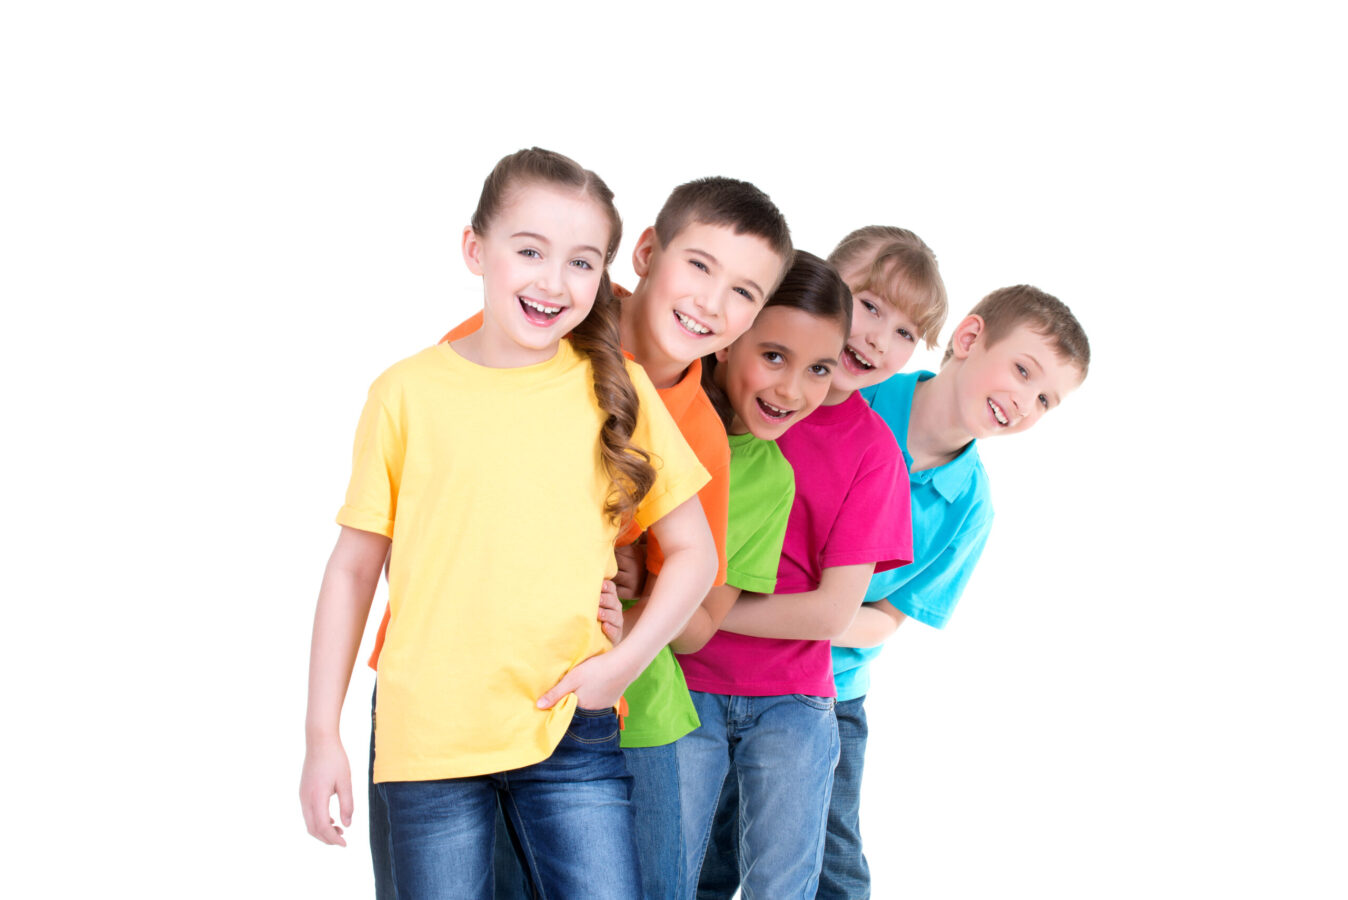 children in colorful t-shirts stand behind each other on white background.